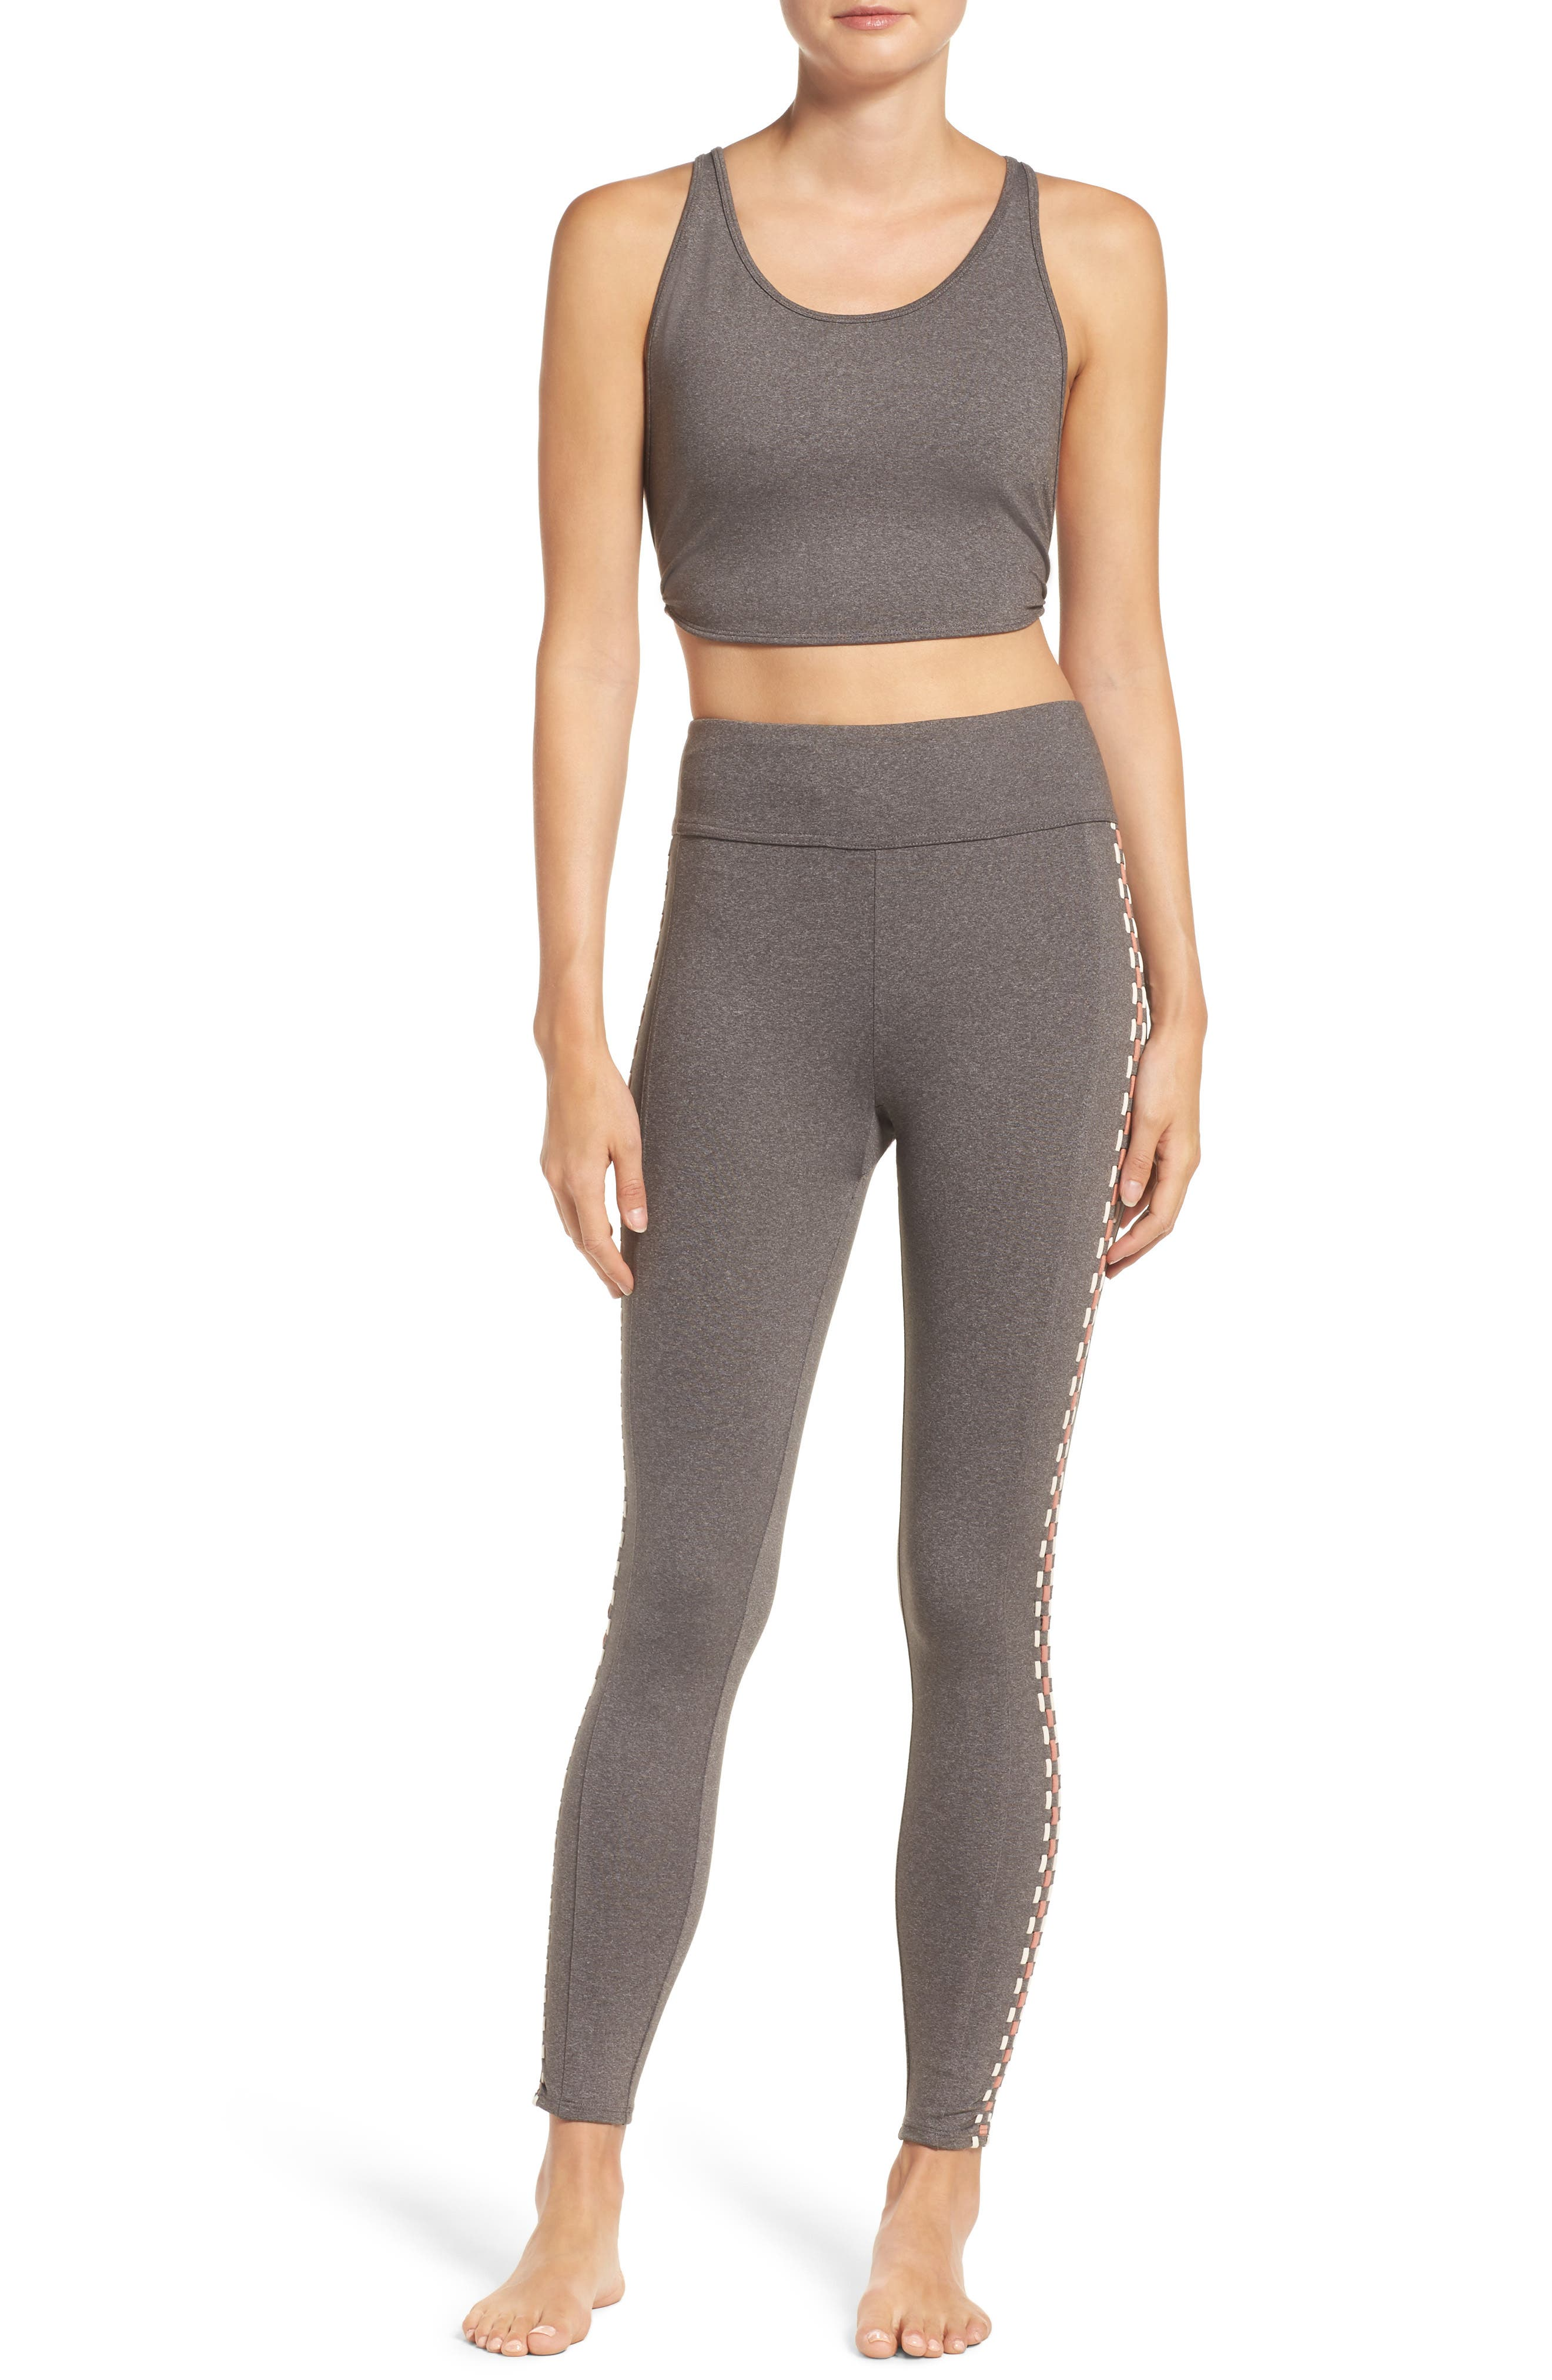 Free People Crop Top & Leggings Outfit